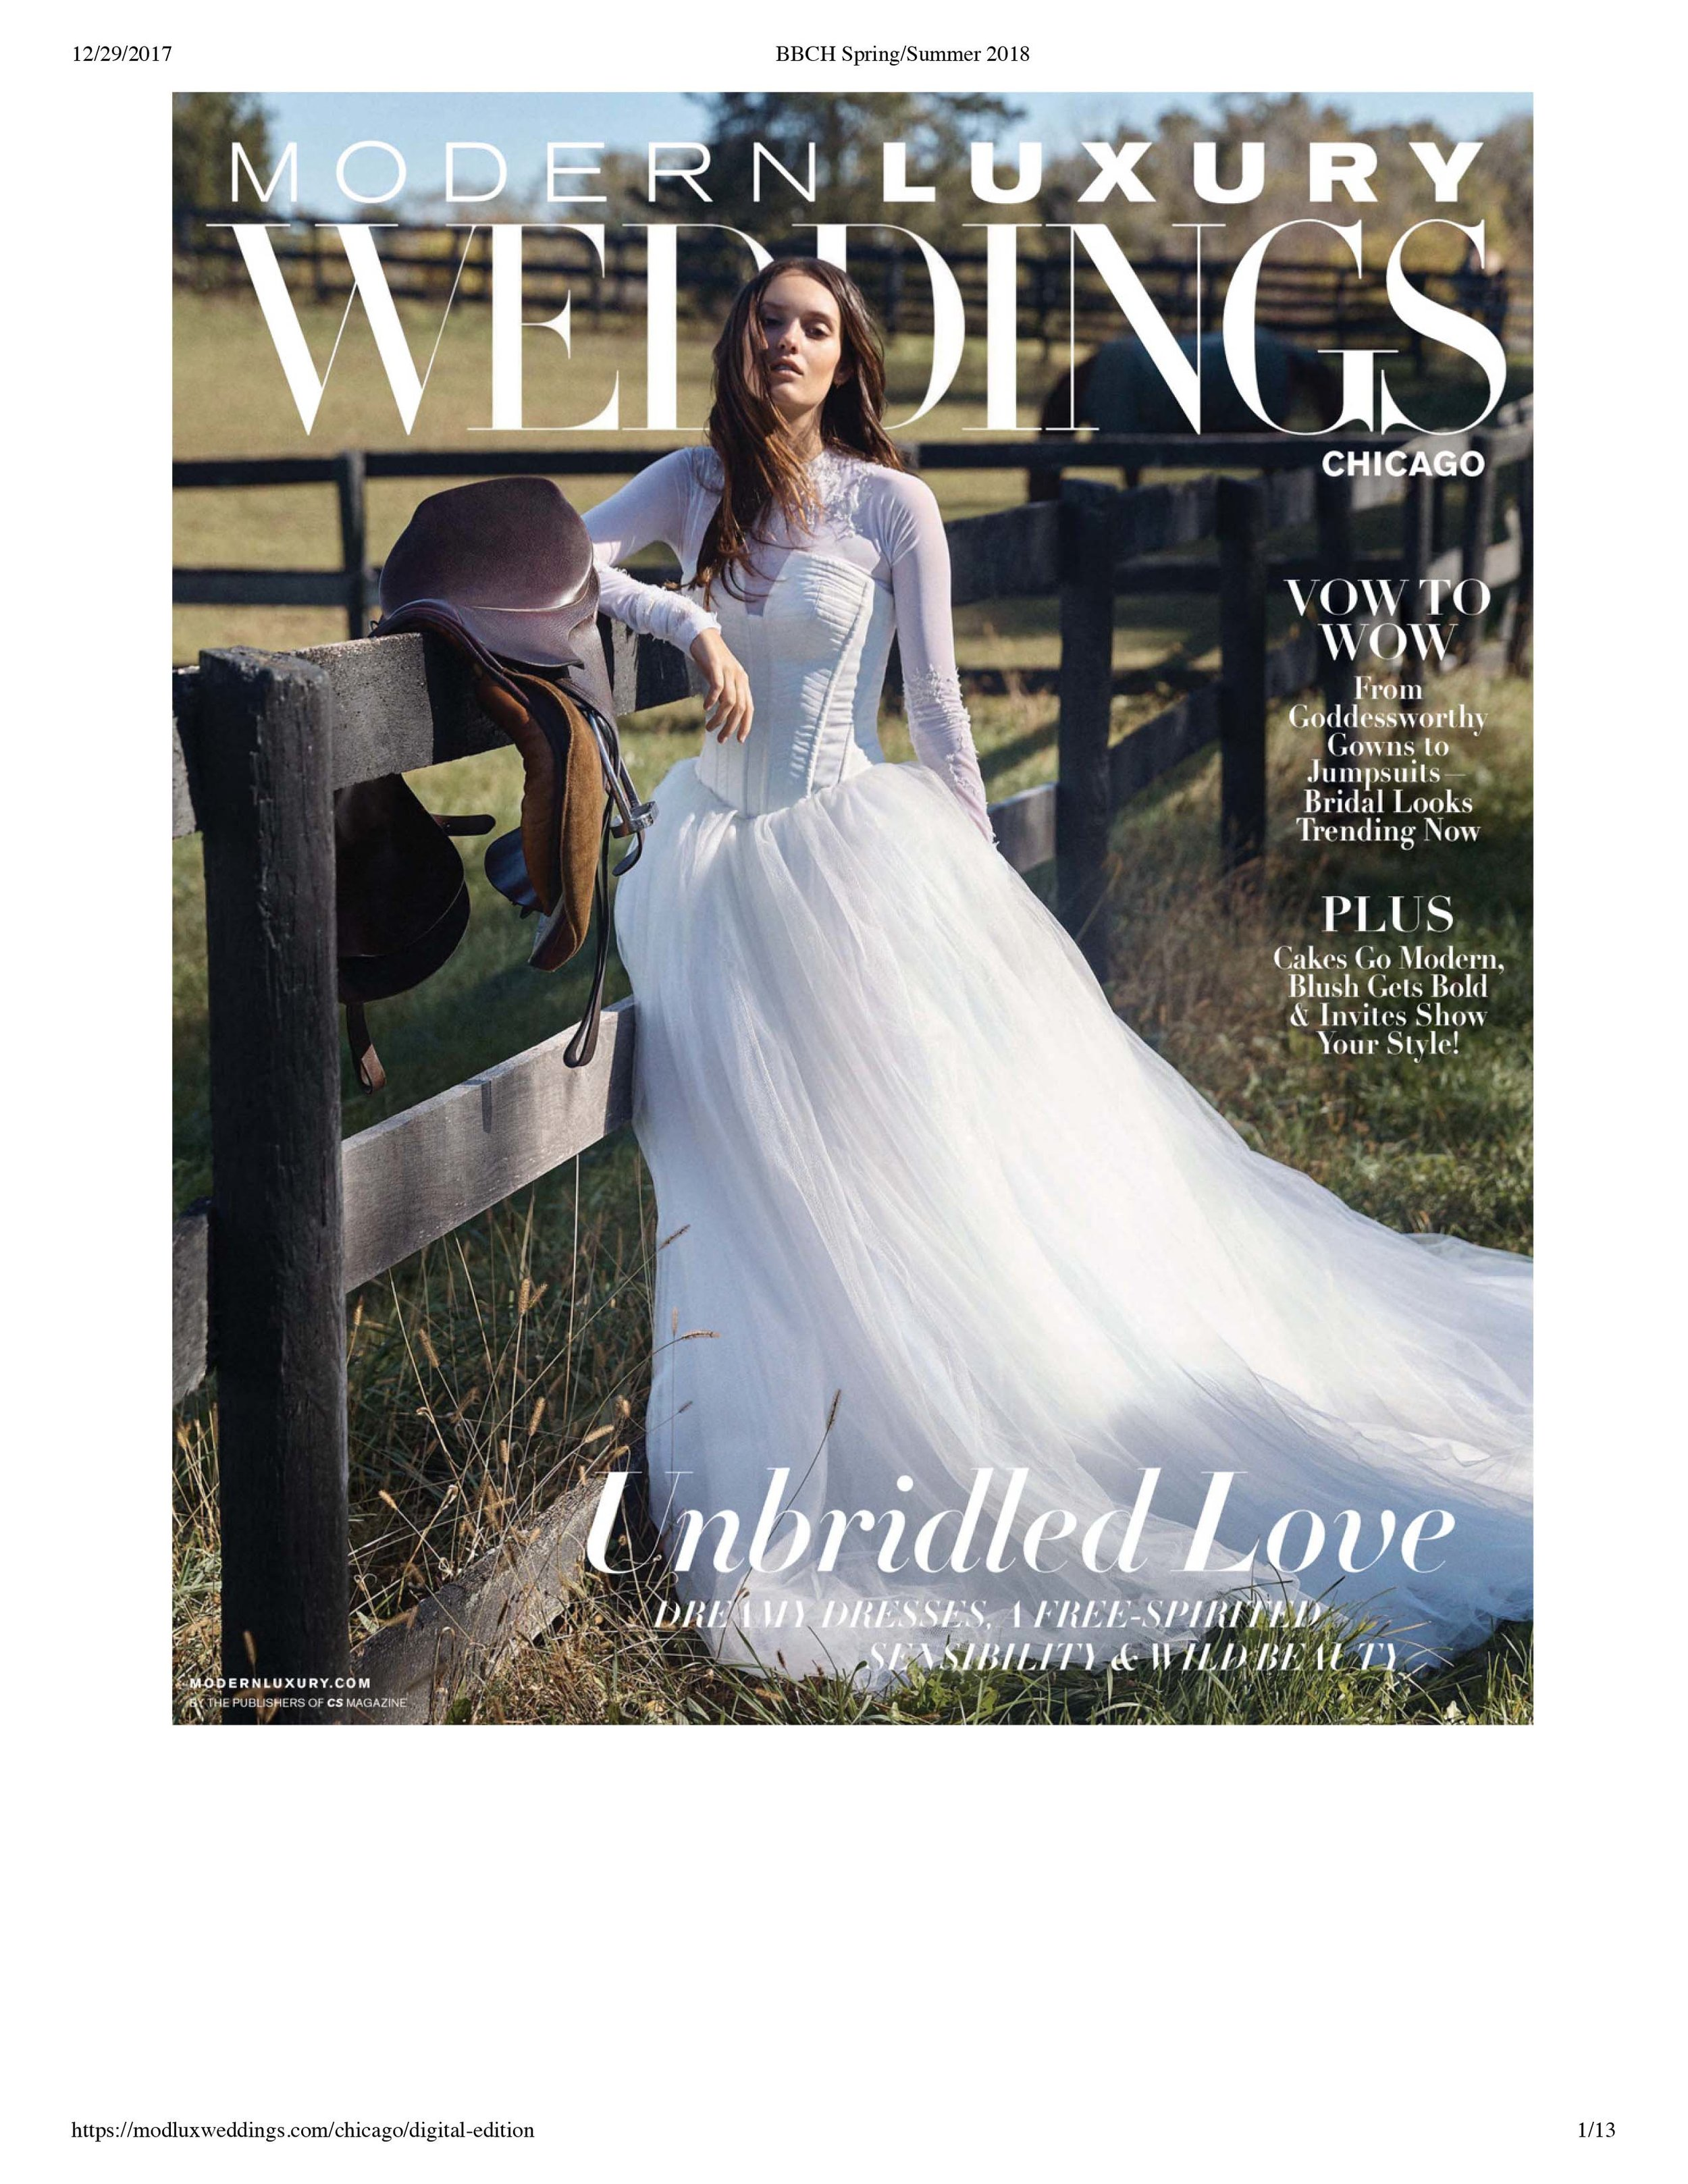 Luxury WEDDINGS Chicago Photographer - SS 2018 Issue - Rose Photo Complete Coverage-1.jpg